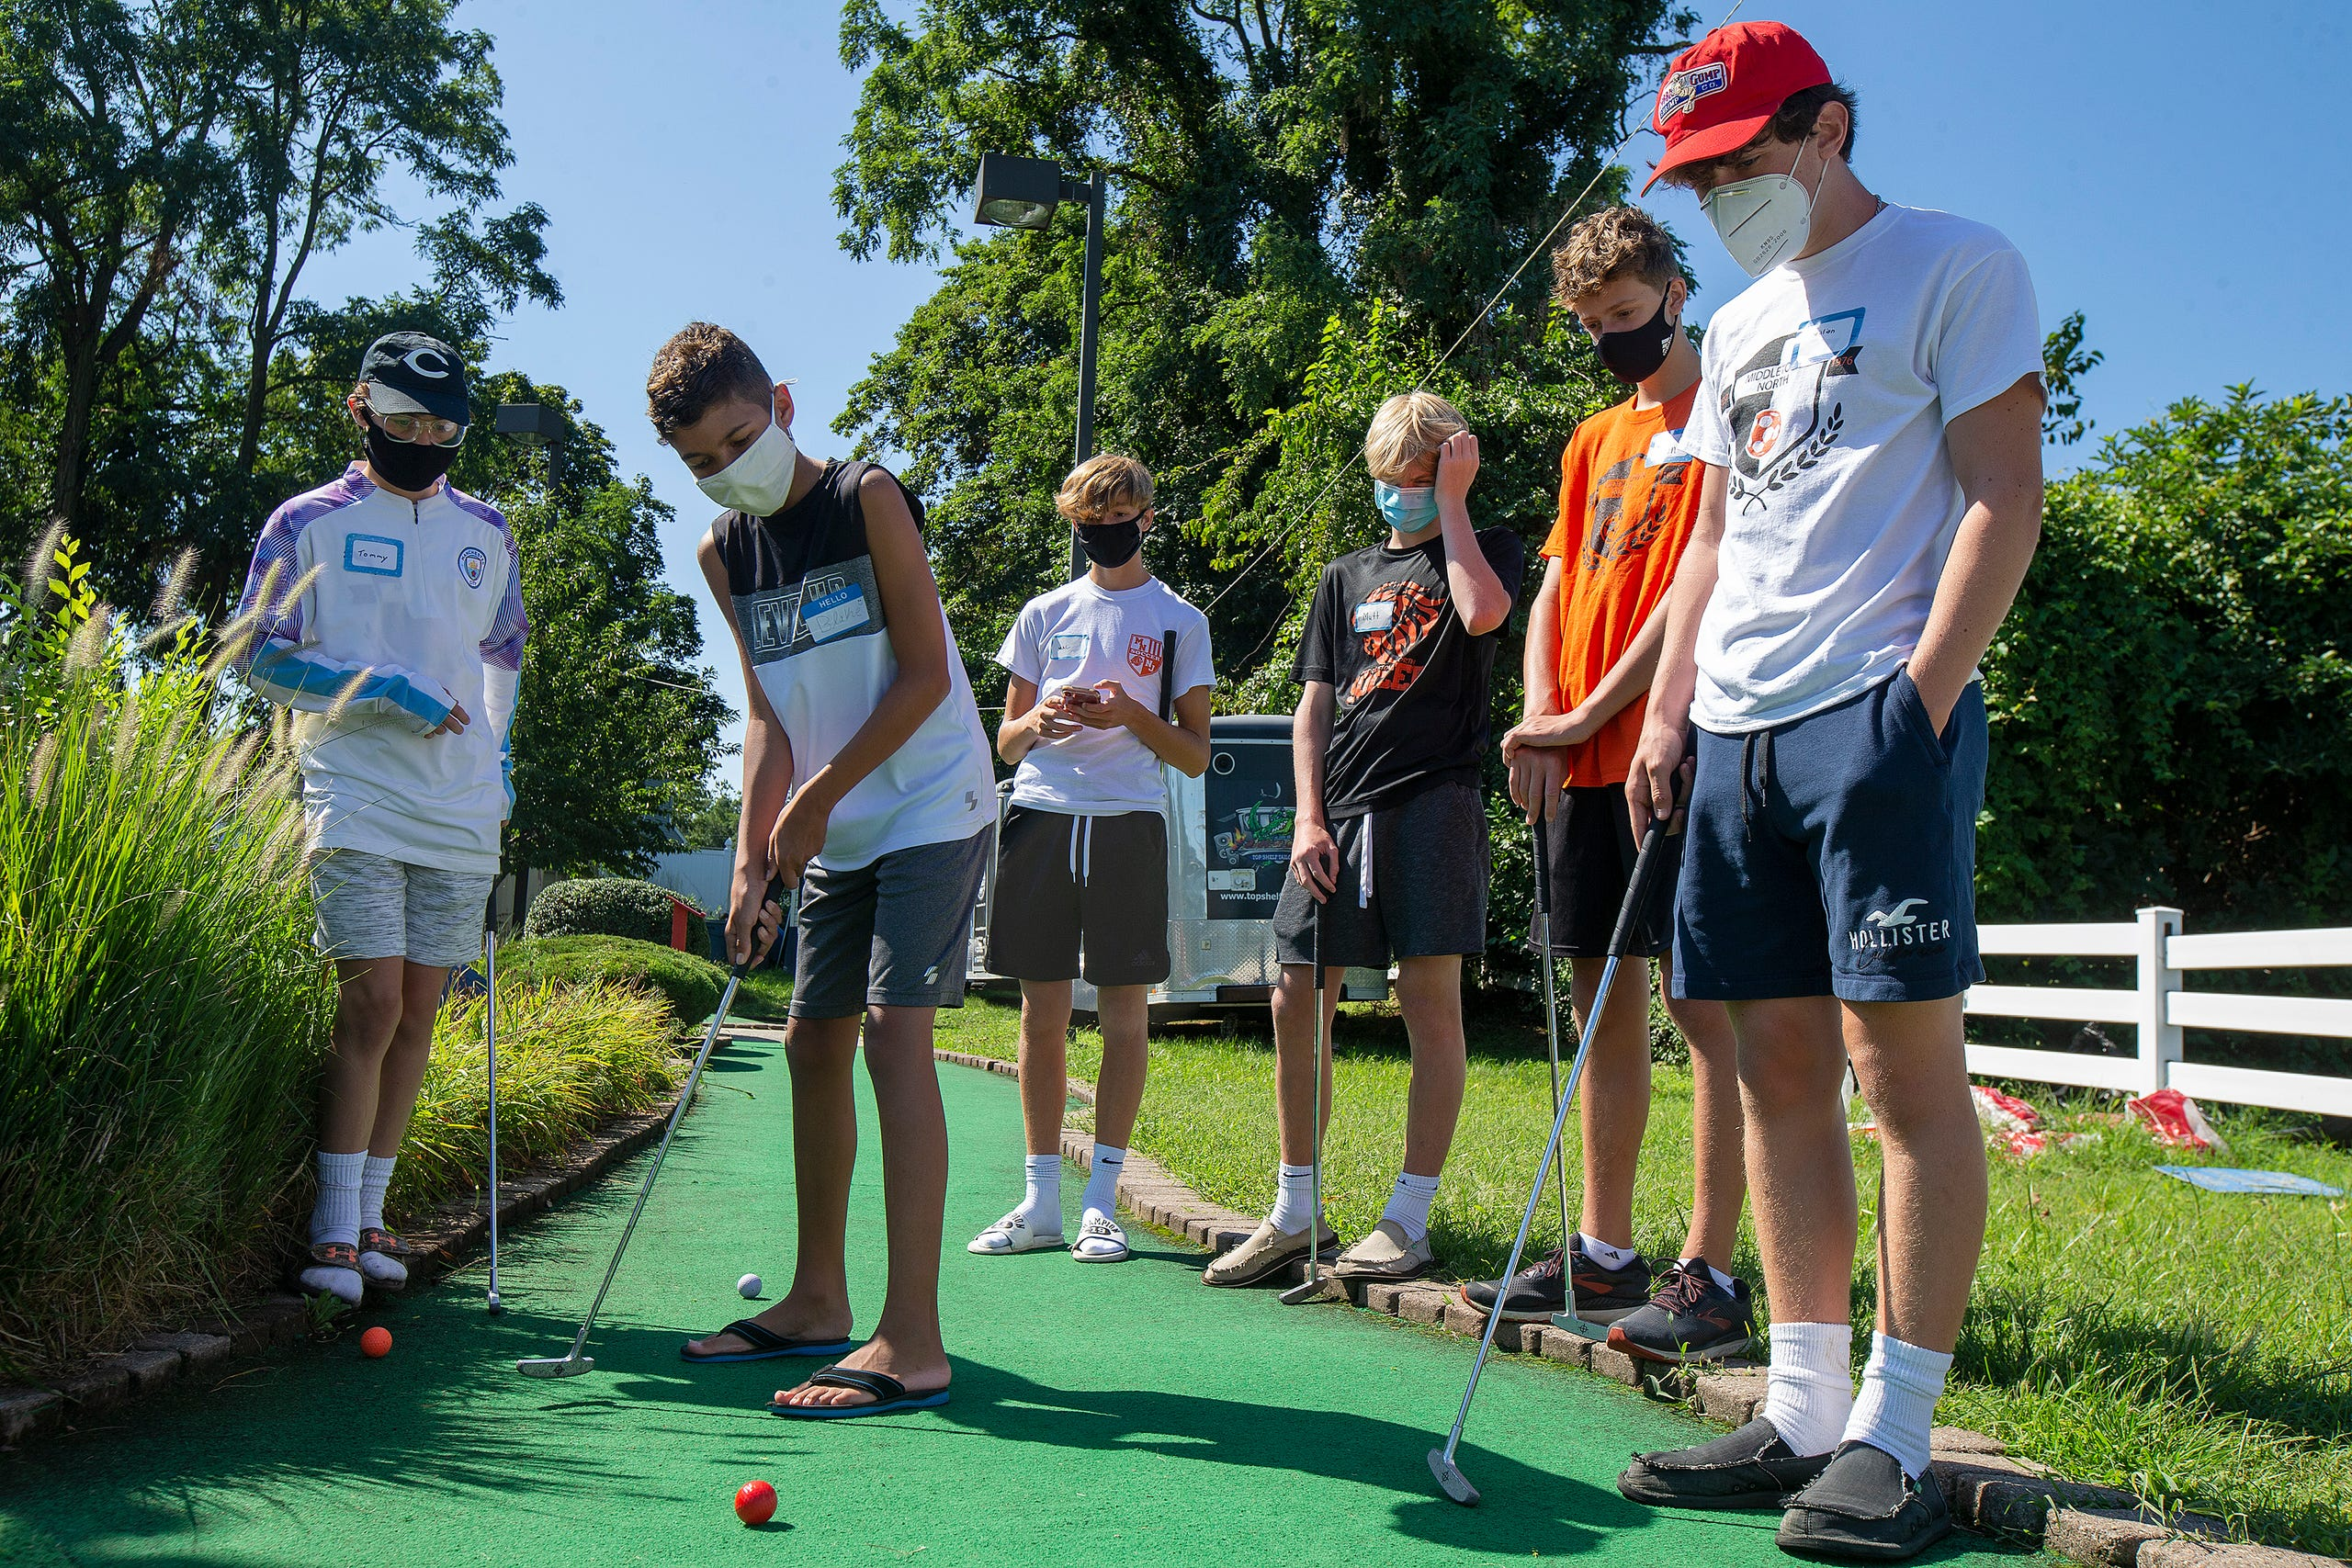 (center) Blake Illingworth, 13, of Middletown plays mini-golf with members of the Middletown North boys soccer team as part of Friends Connect Foundation, a nonprofit run by Sophia Ziajski, 19, of Middletown, atTST BBQ & Mini Golf in Middletown, NJ Tuesday, August 18, 2020.